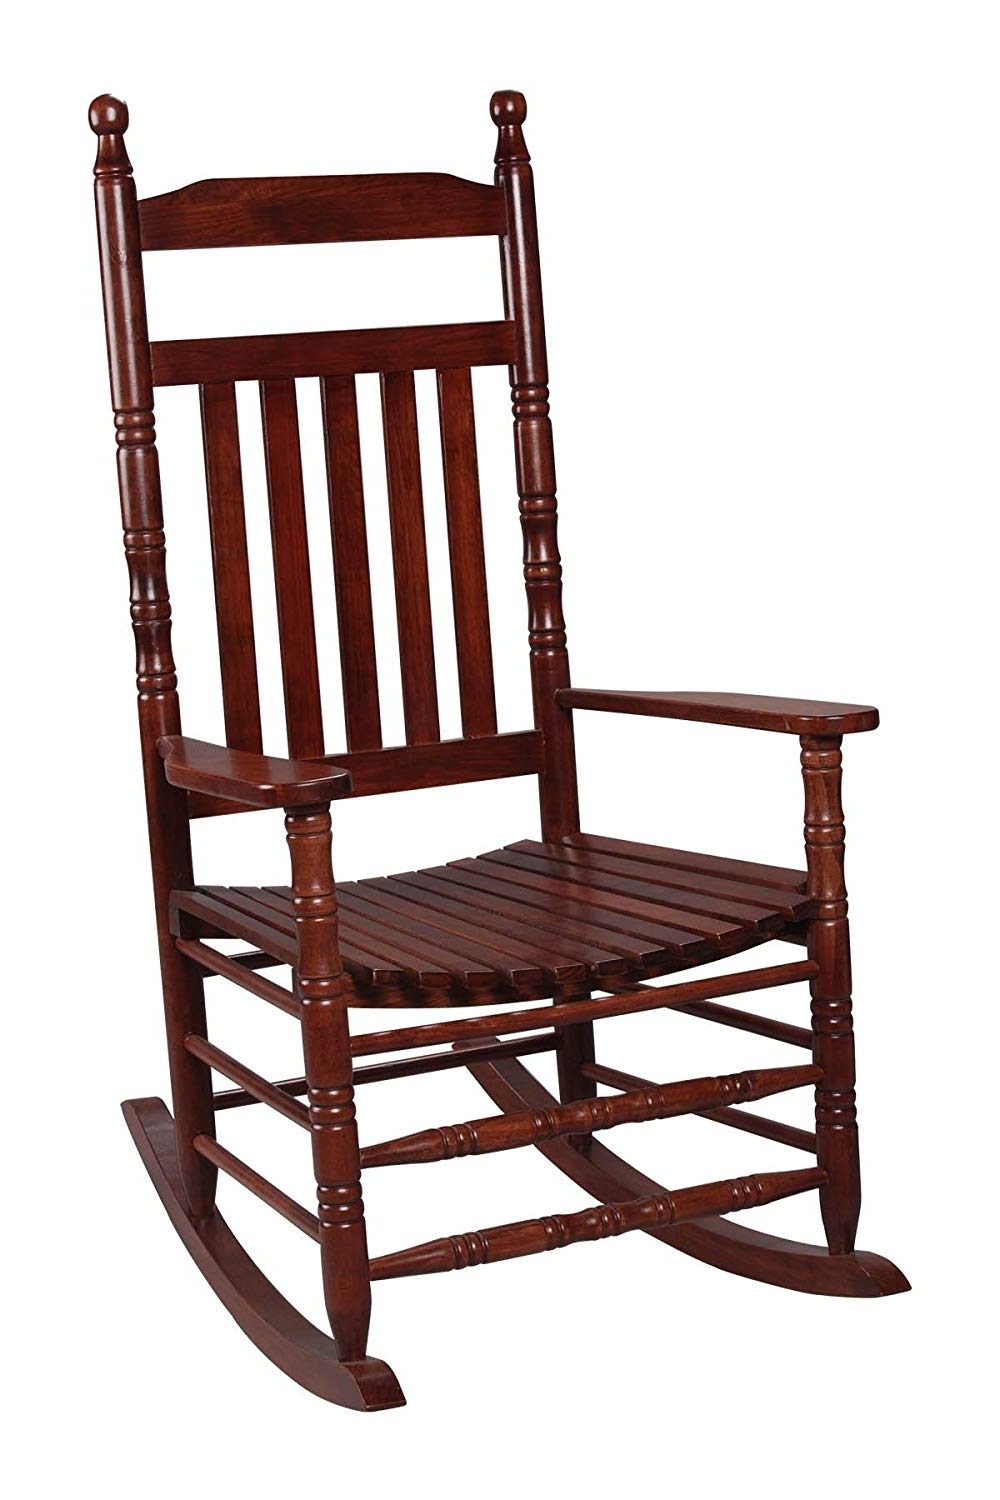 Amazon: Gift Mark Deluxe Adult Rocking Extra Tall Back Chair Pertaining To Popular Zen Rocking Chairs (View 2 of 15)